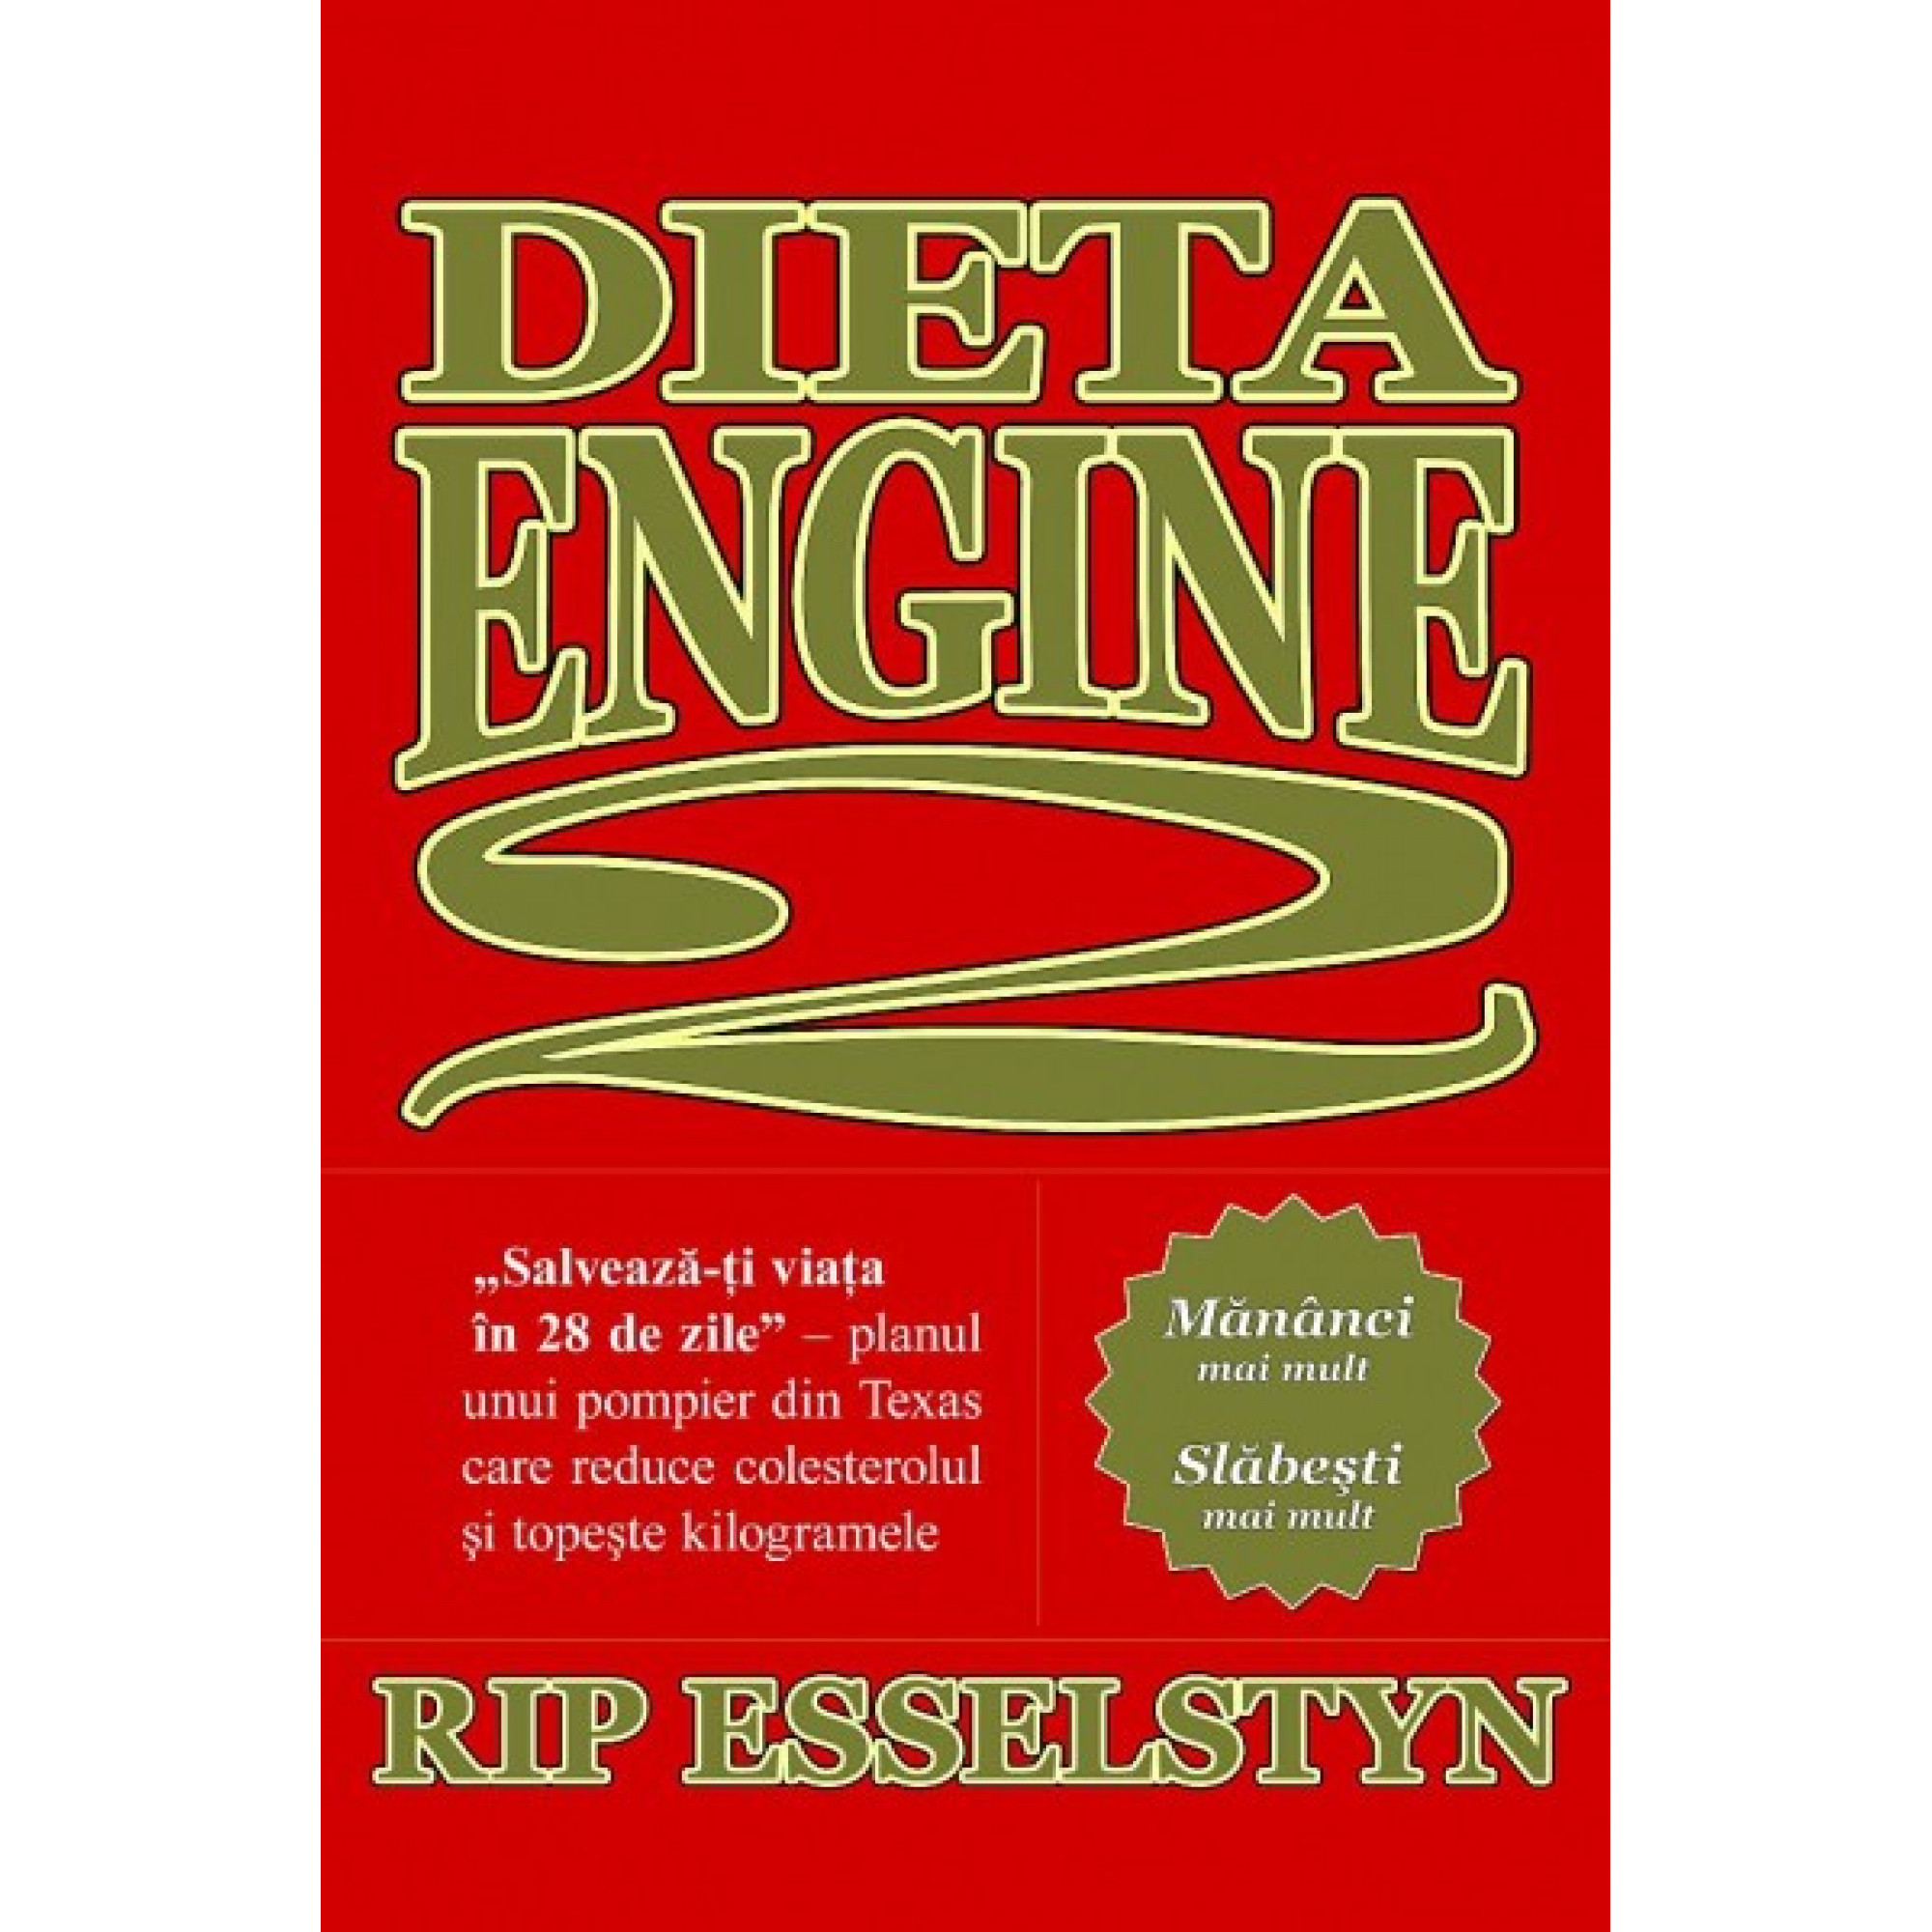 Dieta Engine 2; Rip Esselstyn